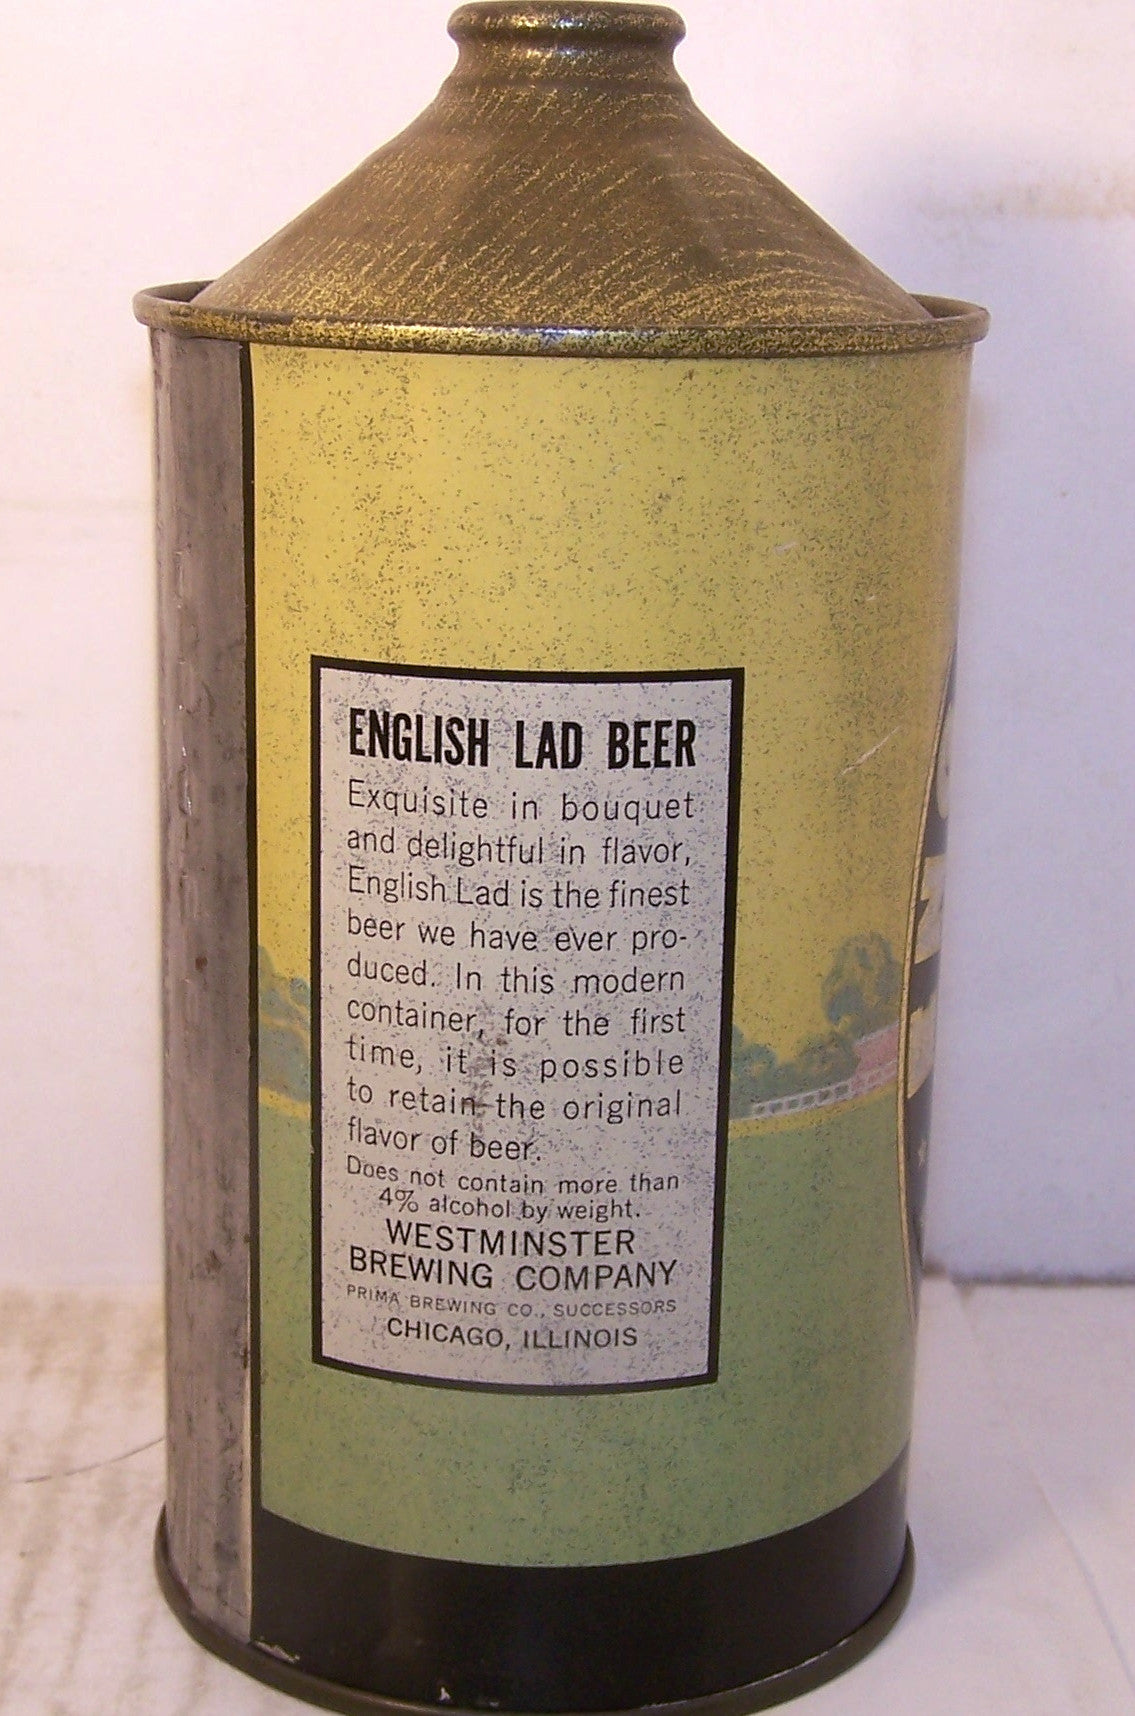 English Lad Beer, DNCMT 4%, USBC 208-3, Grade 1- Sold 7/10/15